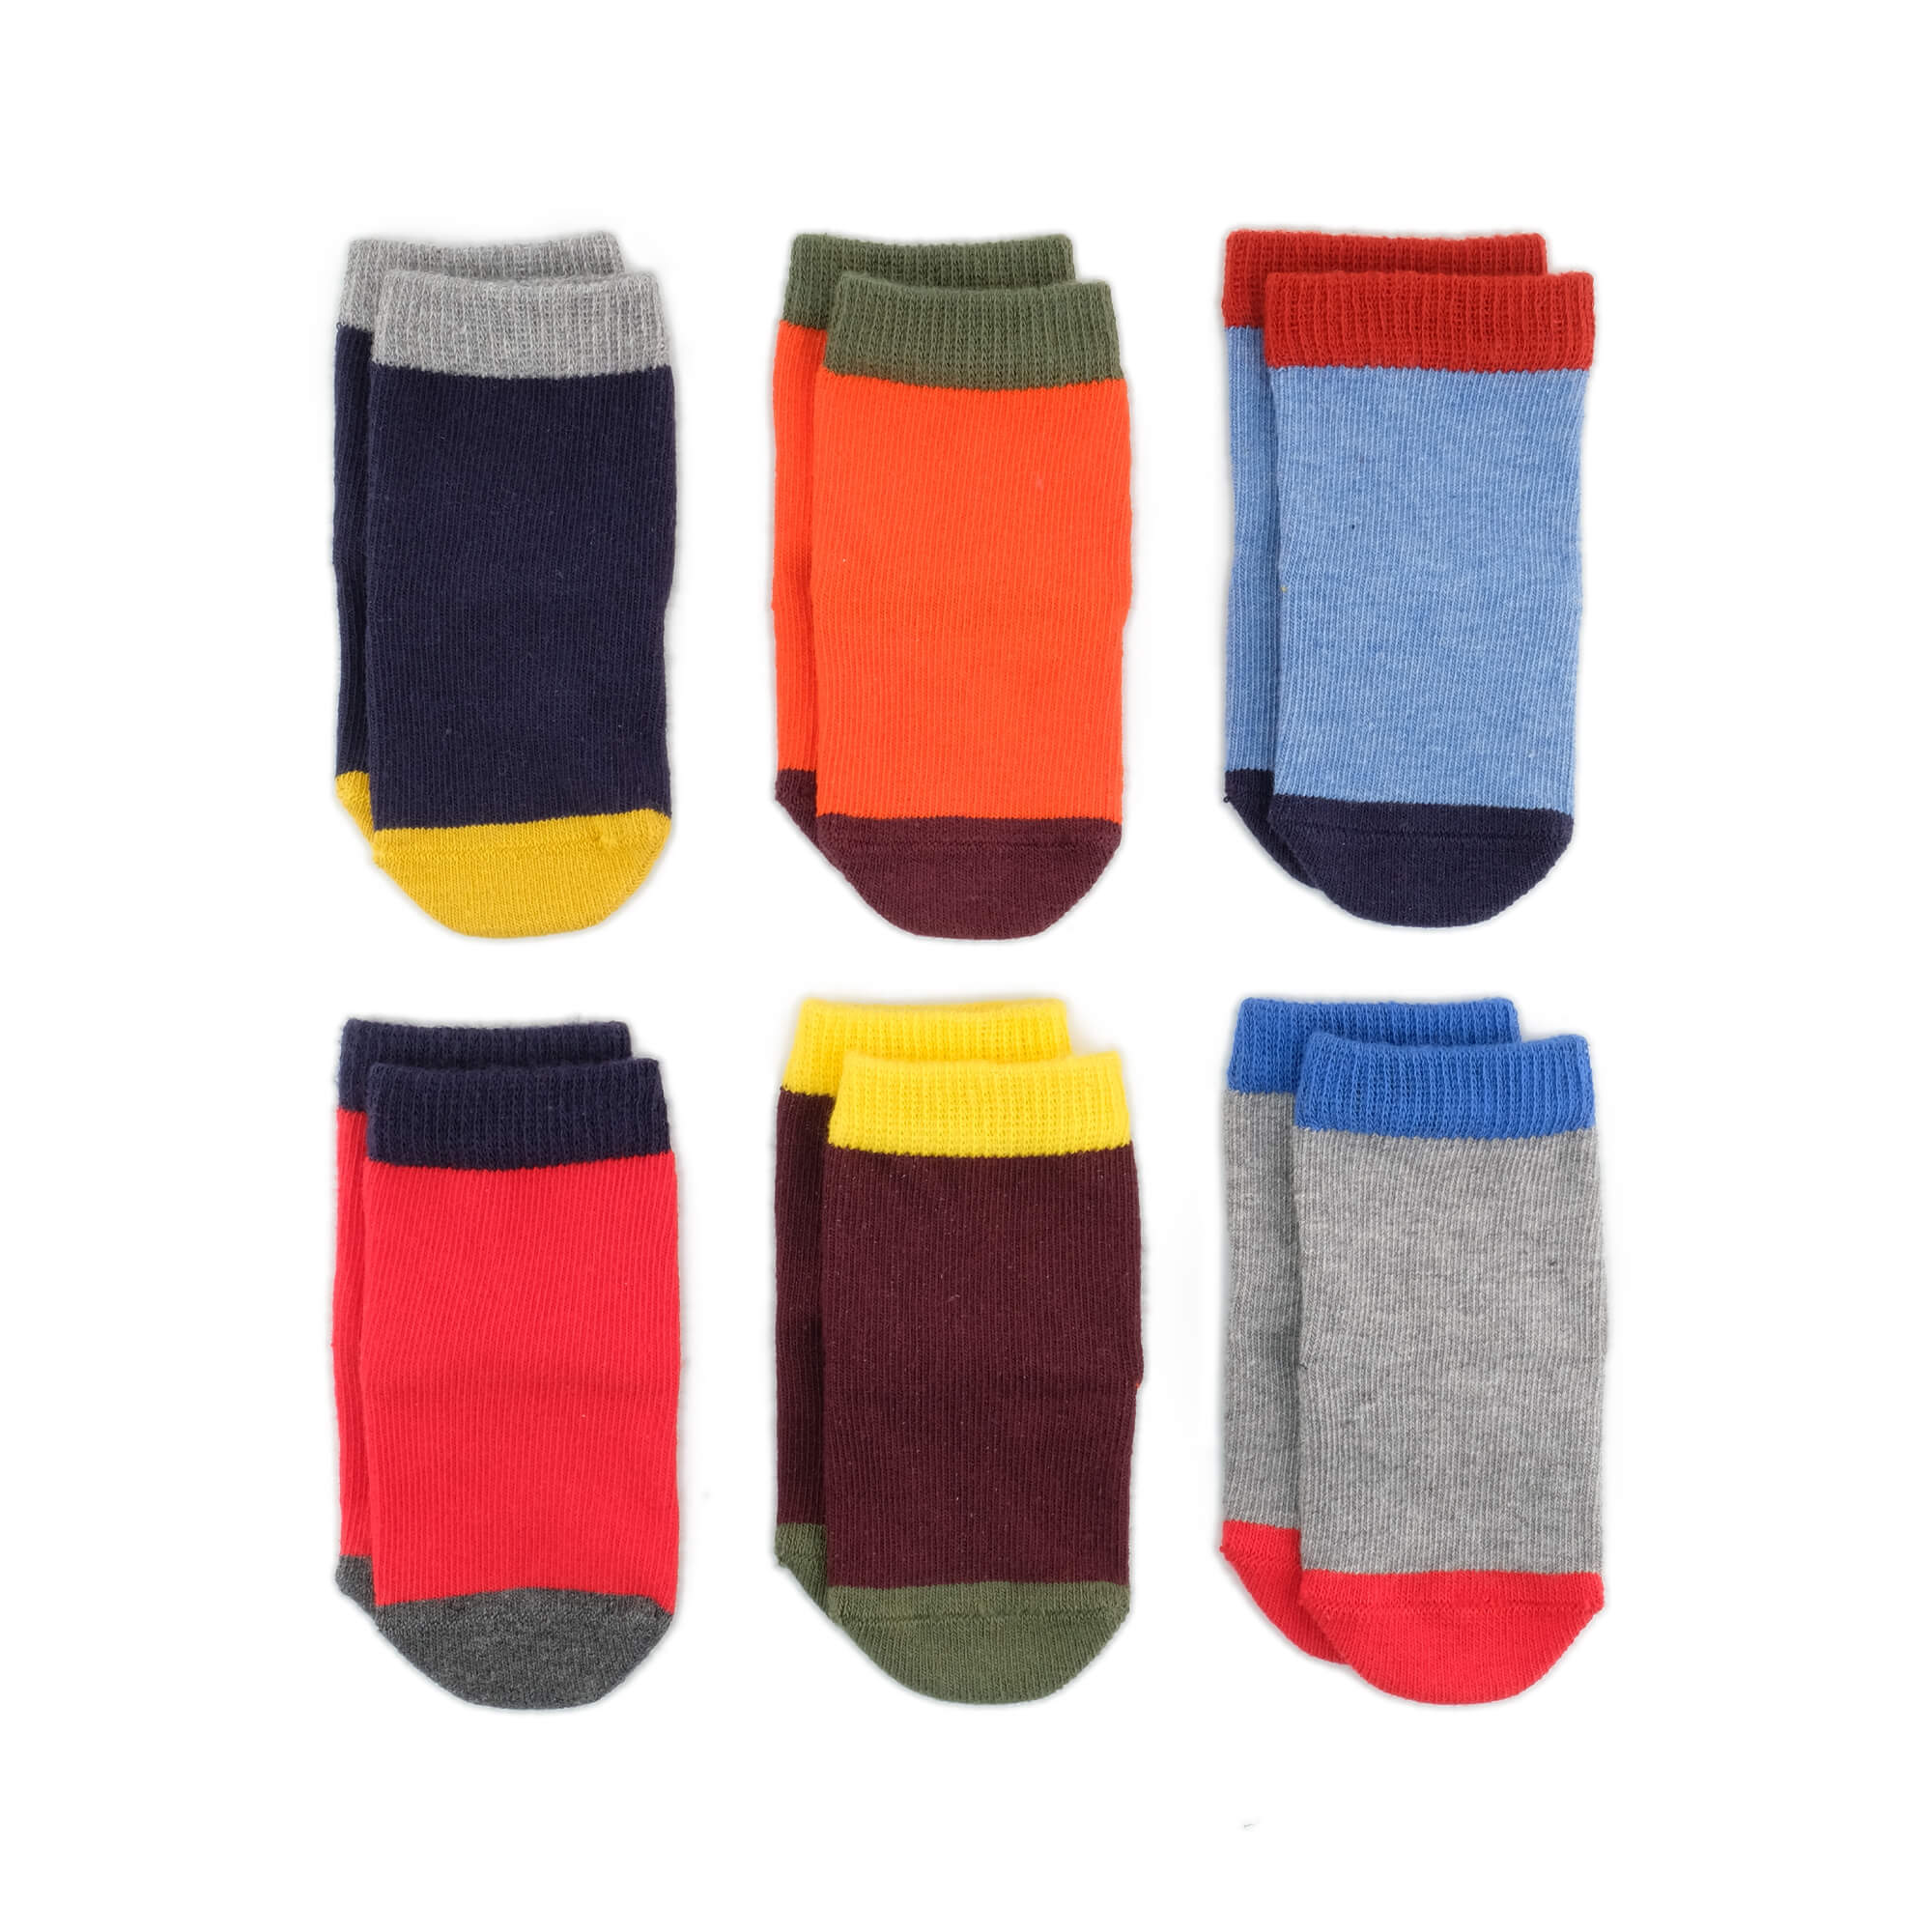 Solid As A Rock Baby Socks Bundle - Multi